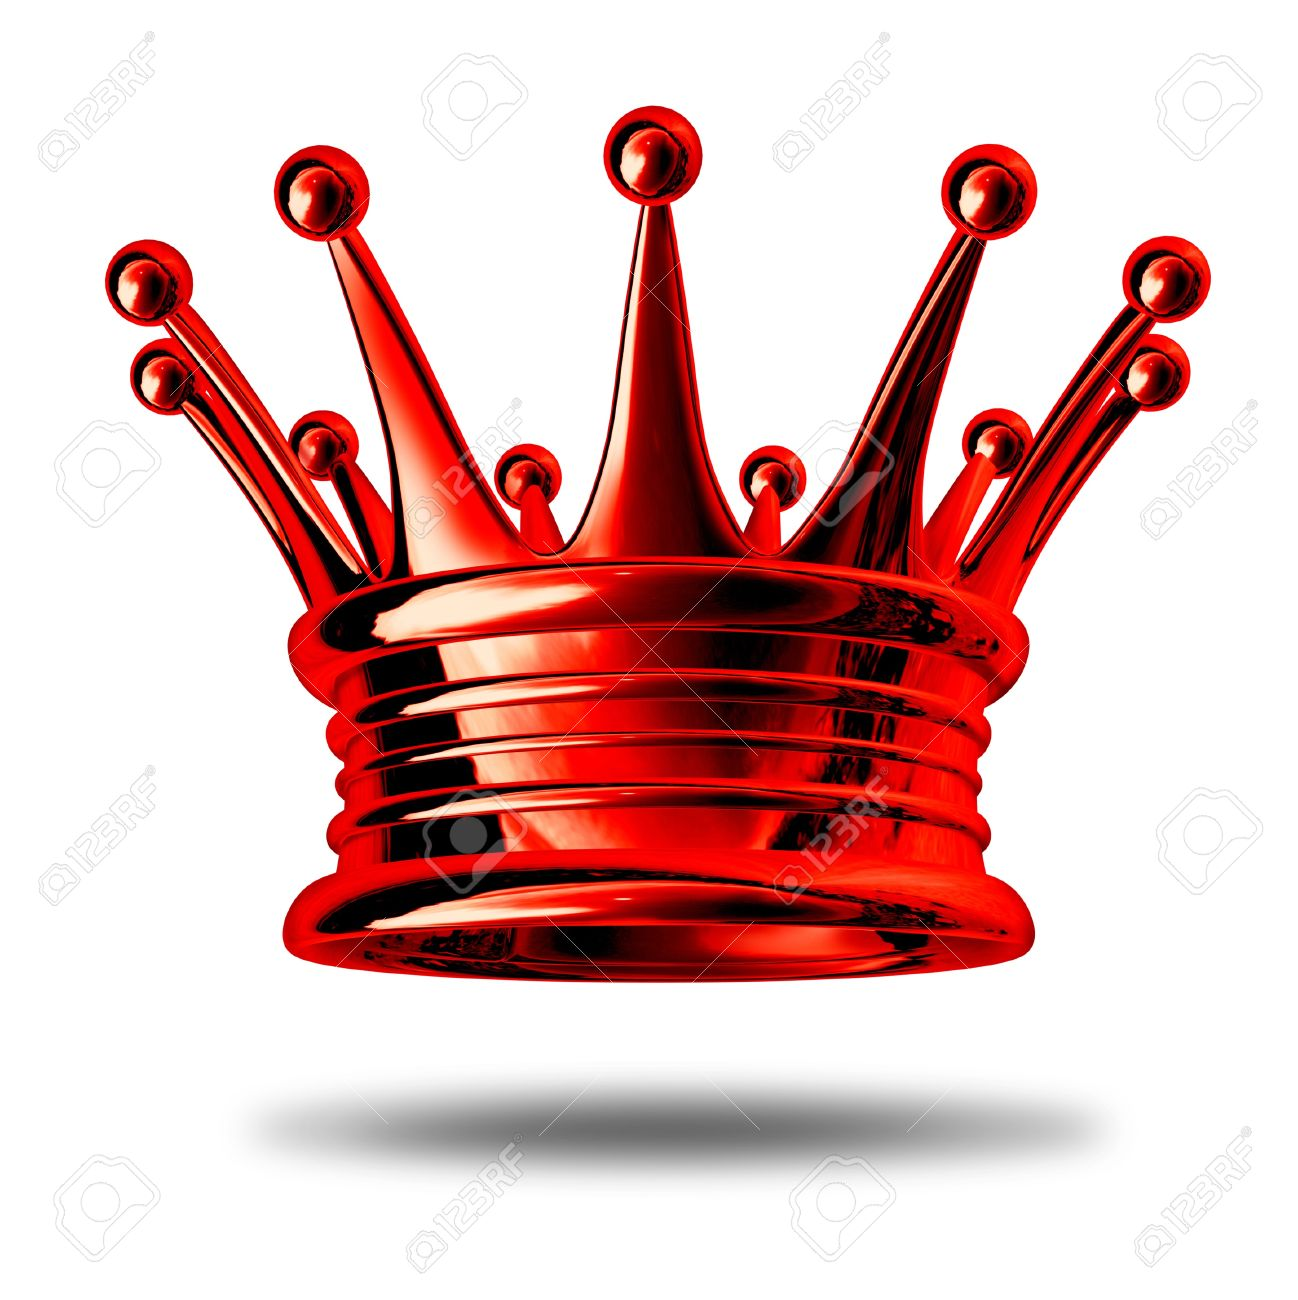 Red Crown Representing Royalty And Wealth As A King Maker Award